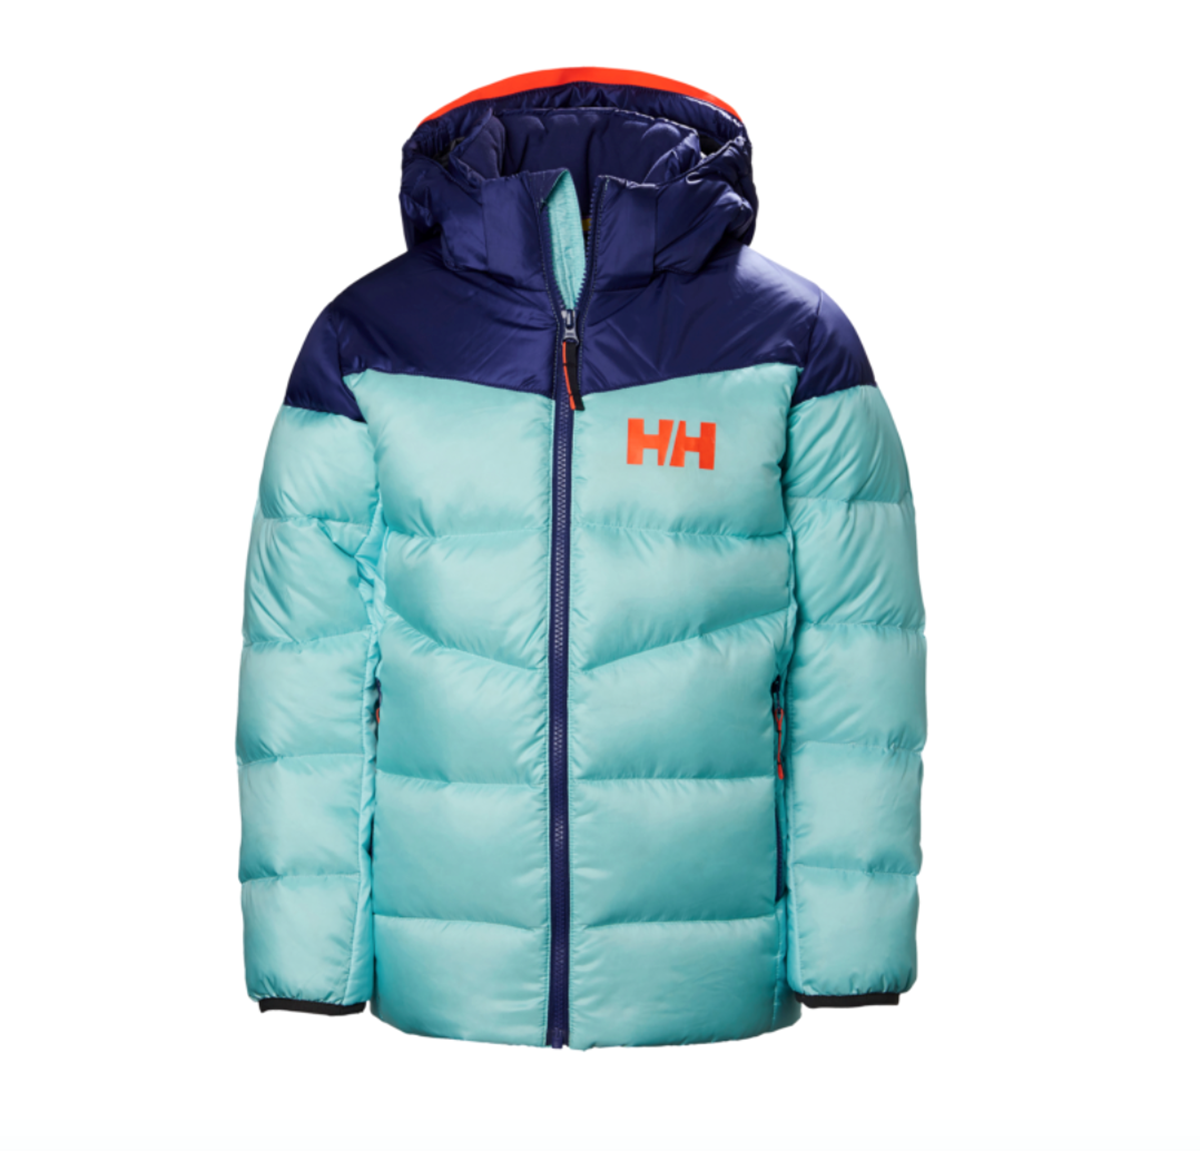 a40558d7 Helly Hansen JUNIOR ISFJORD DOWN MIX JACKET Glacier- Nava Sport - Vi ...